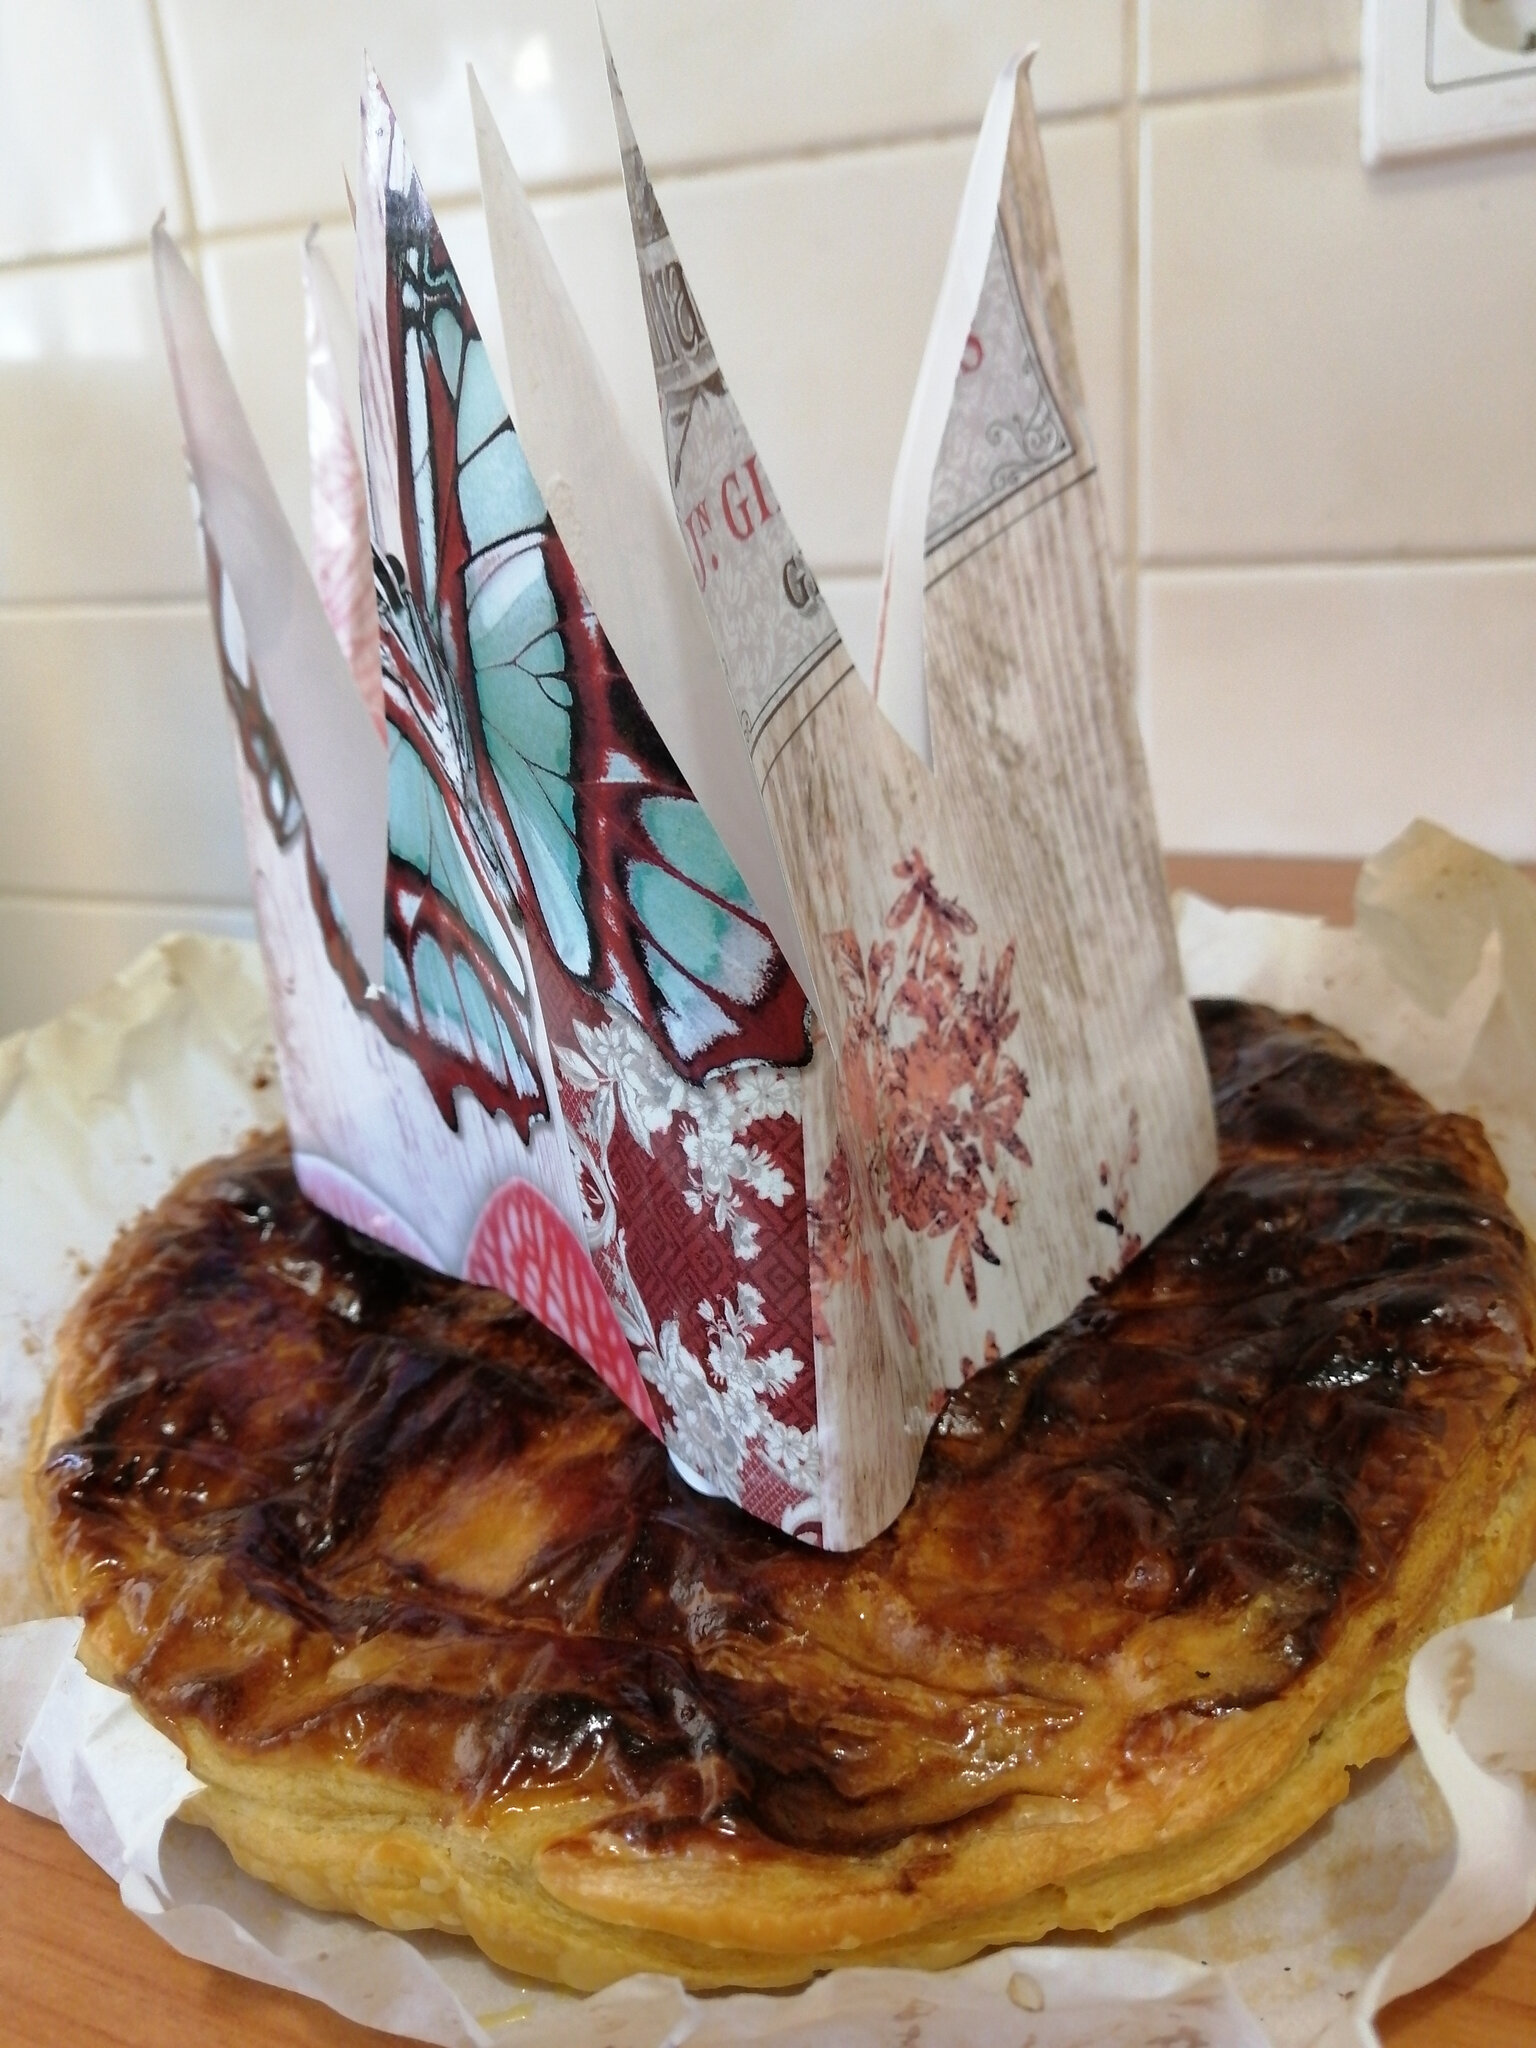 Les mercredis gourmands de l'Epiphanie